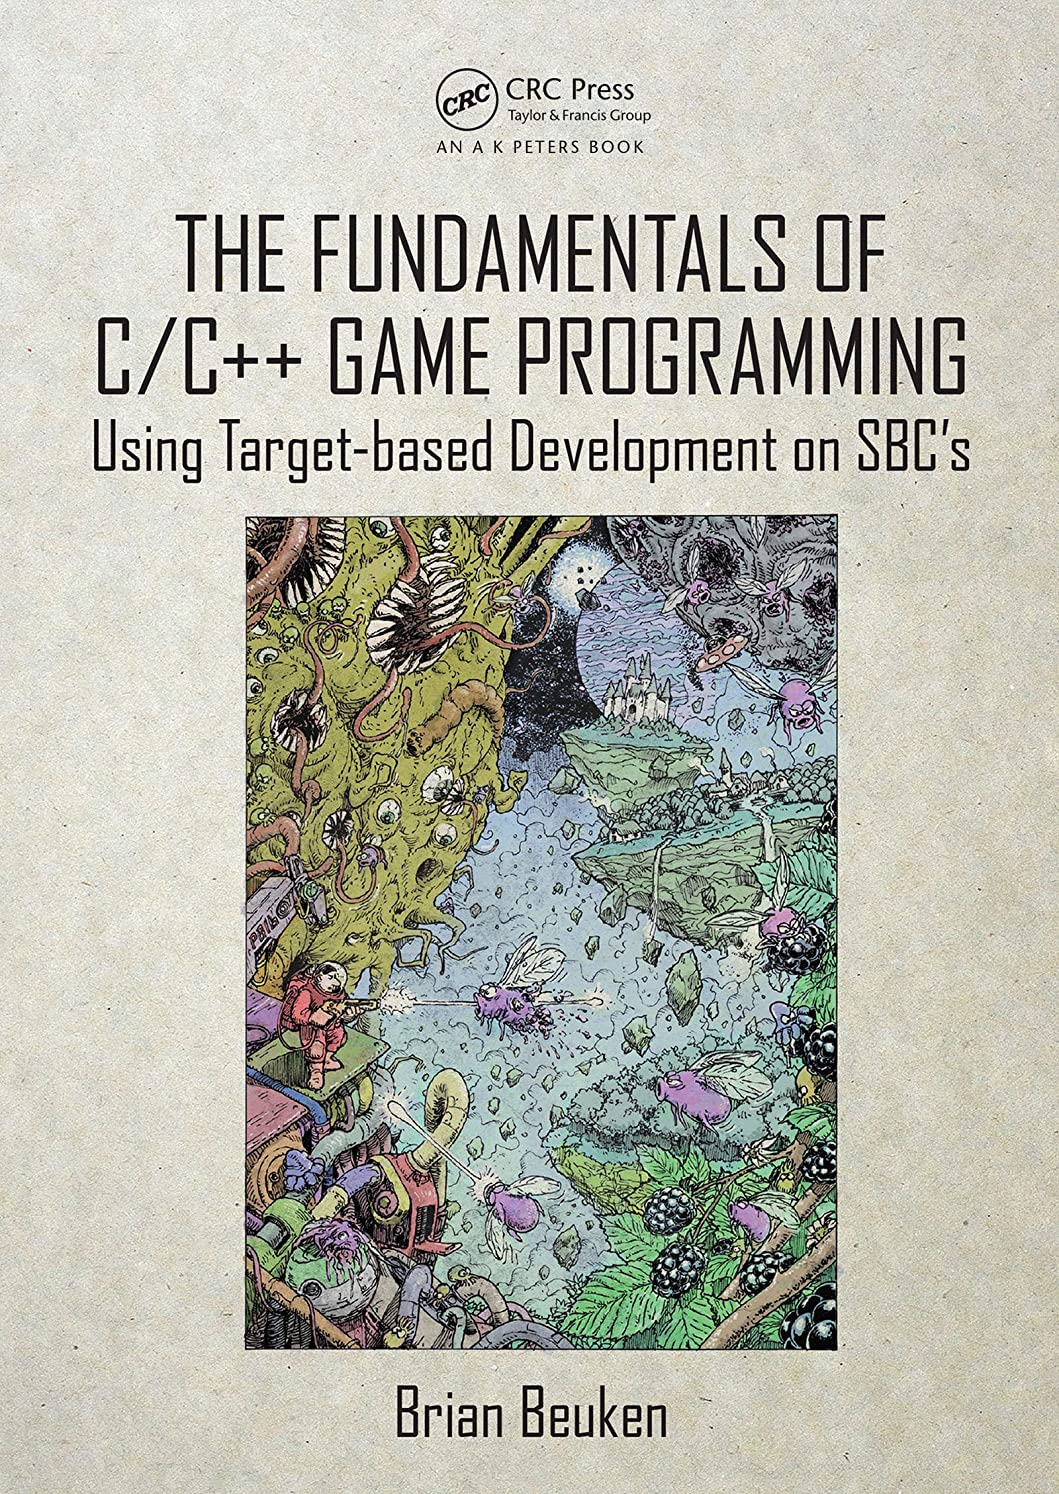 マーカー血統砲兵The Fundamentals of C/C++ Game Programming: Using Target-based Development on SBC's (English Edition)